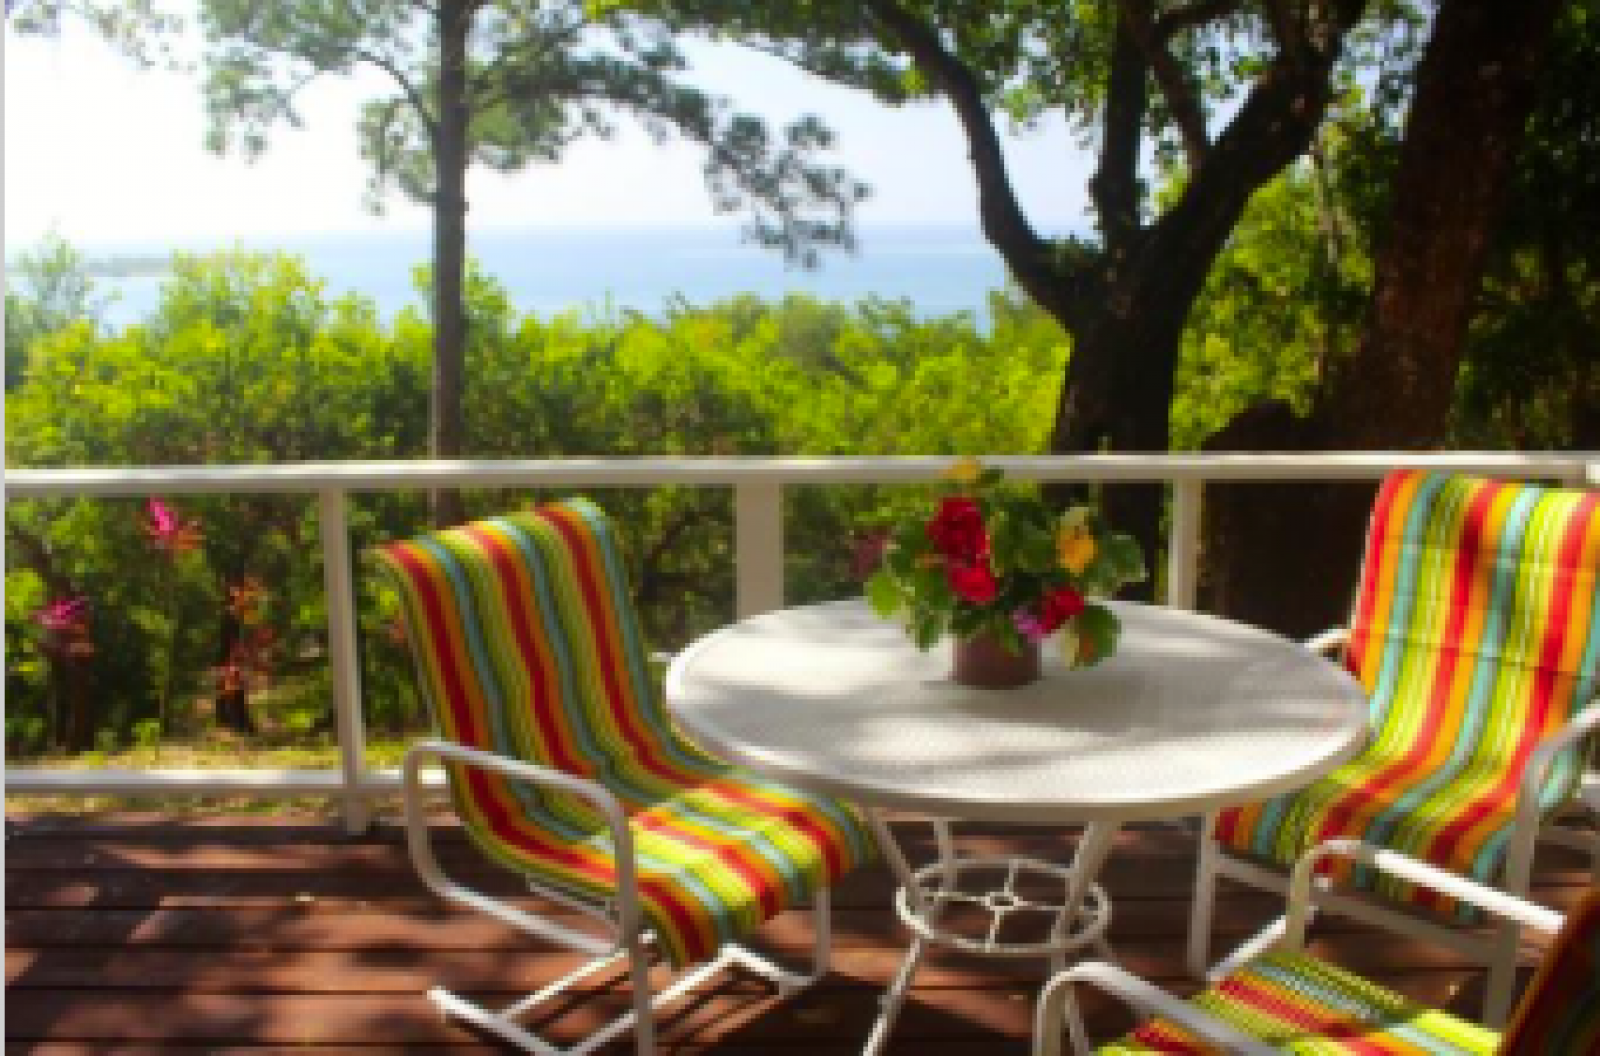 Stunning views over the lush tropical gardens out to the Caribbean Sea.